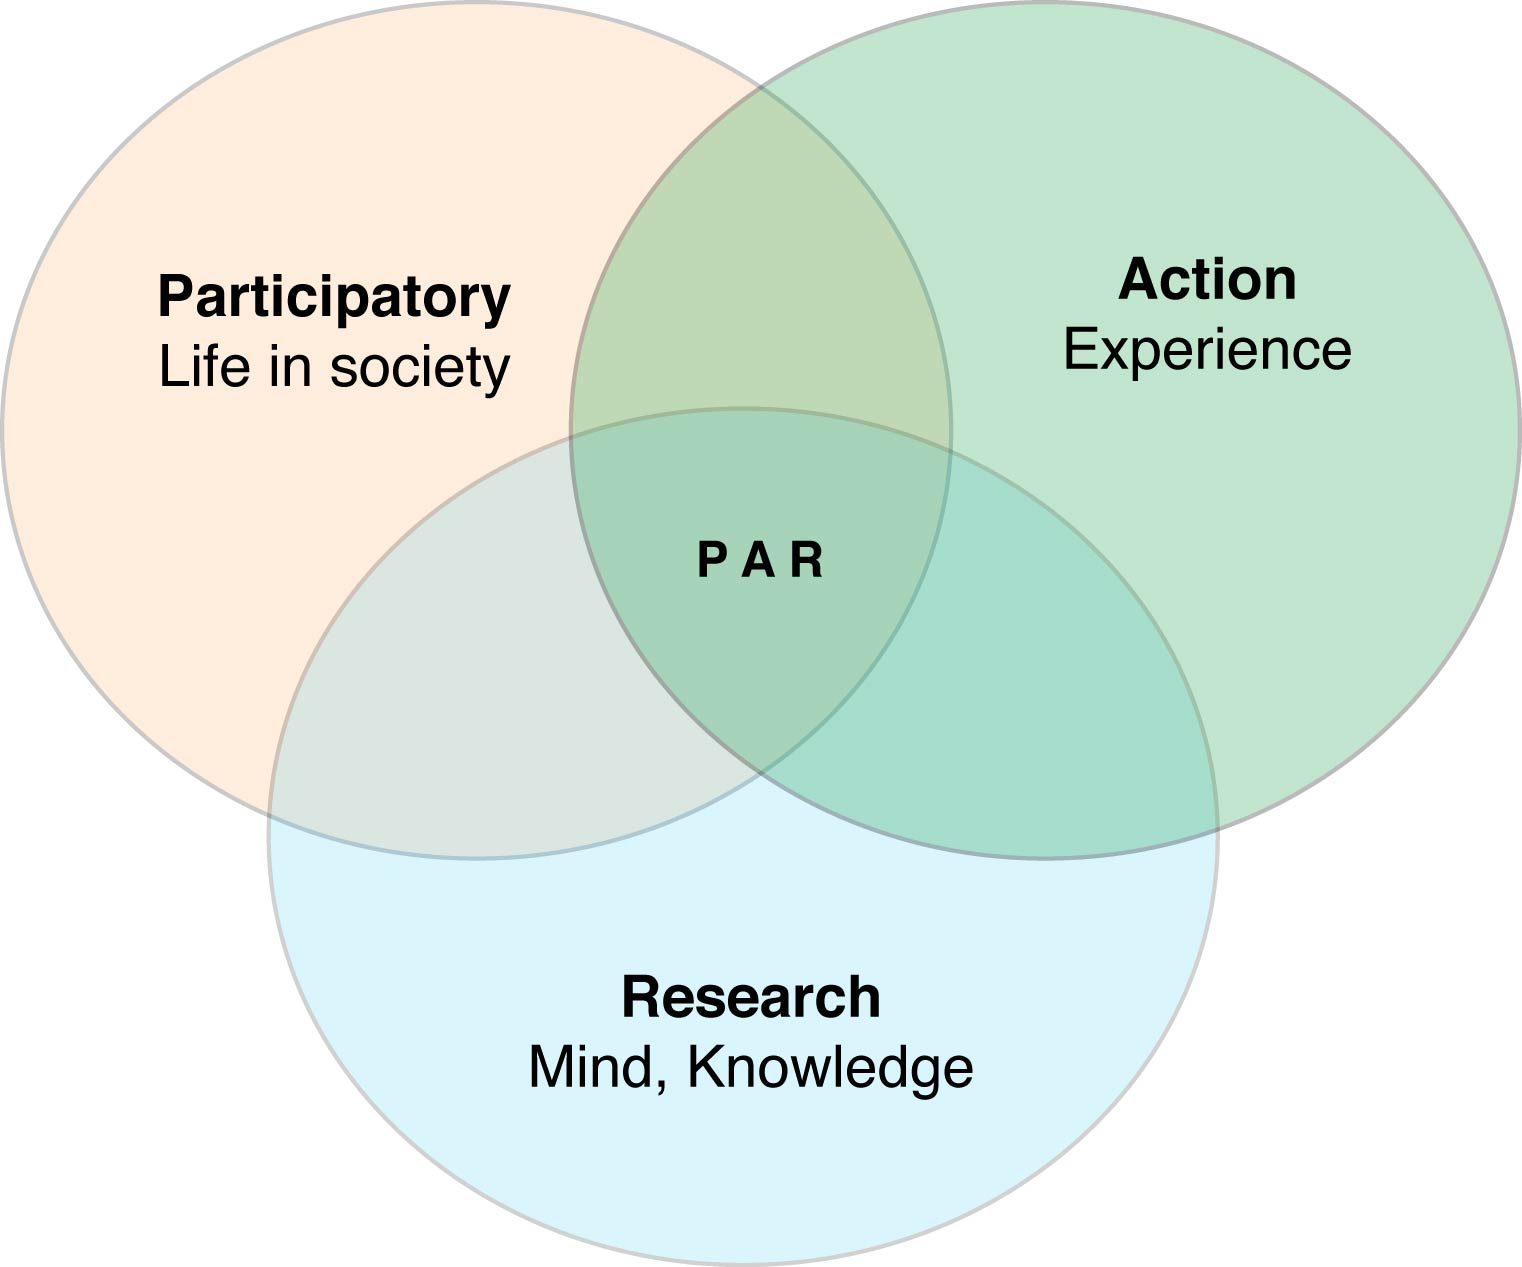 Venn Diagram U: Venn diagram of Participatory Action Research.jpg - Wikipedia,Chart